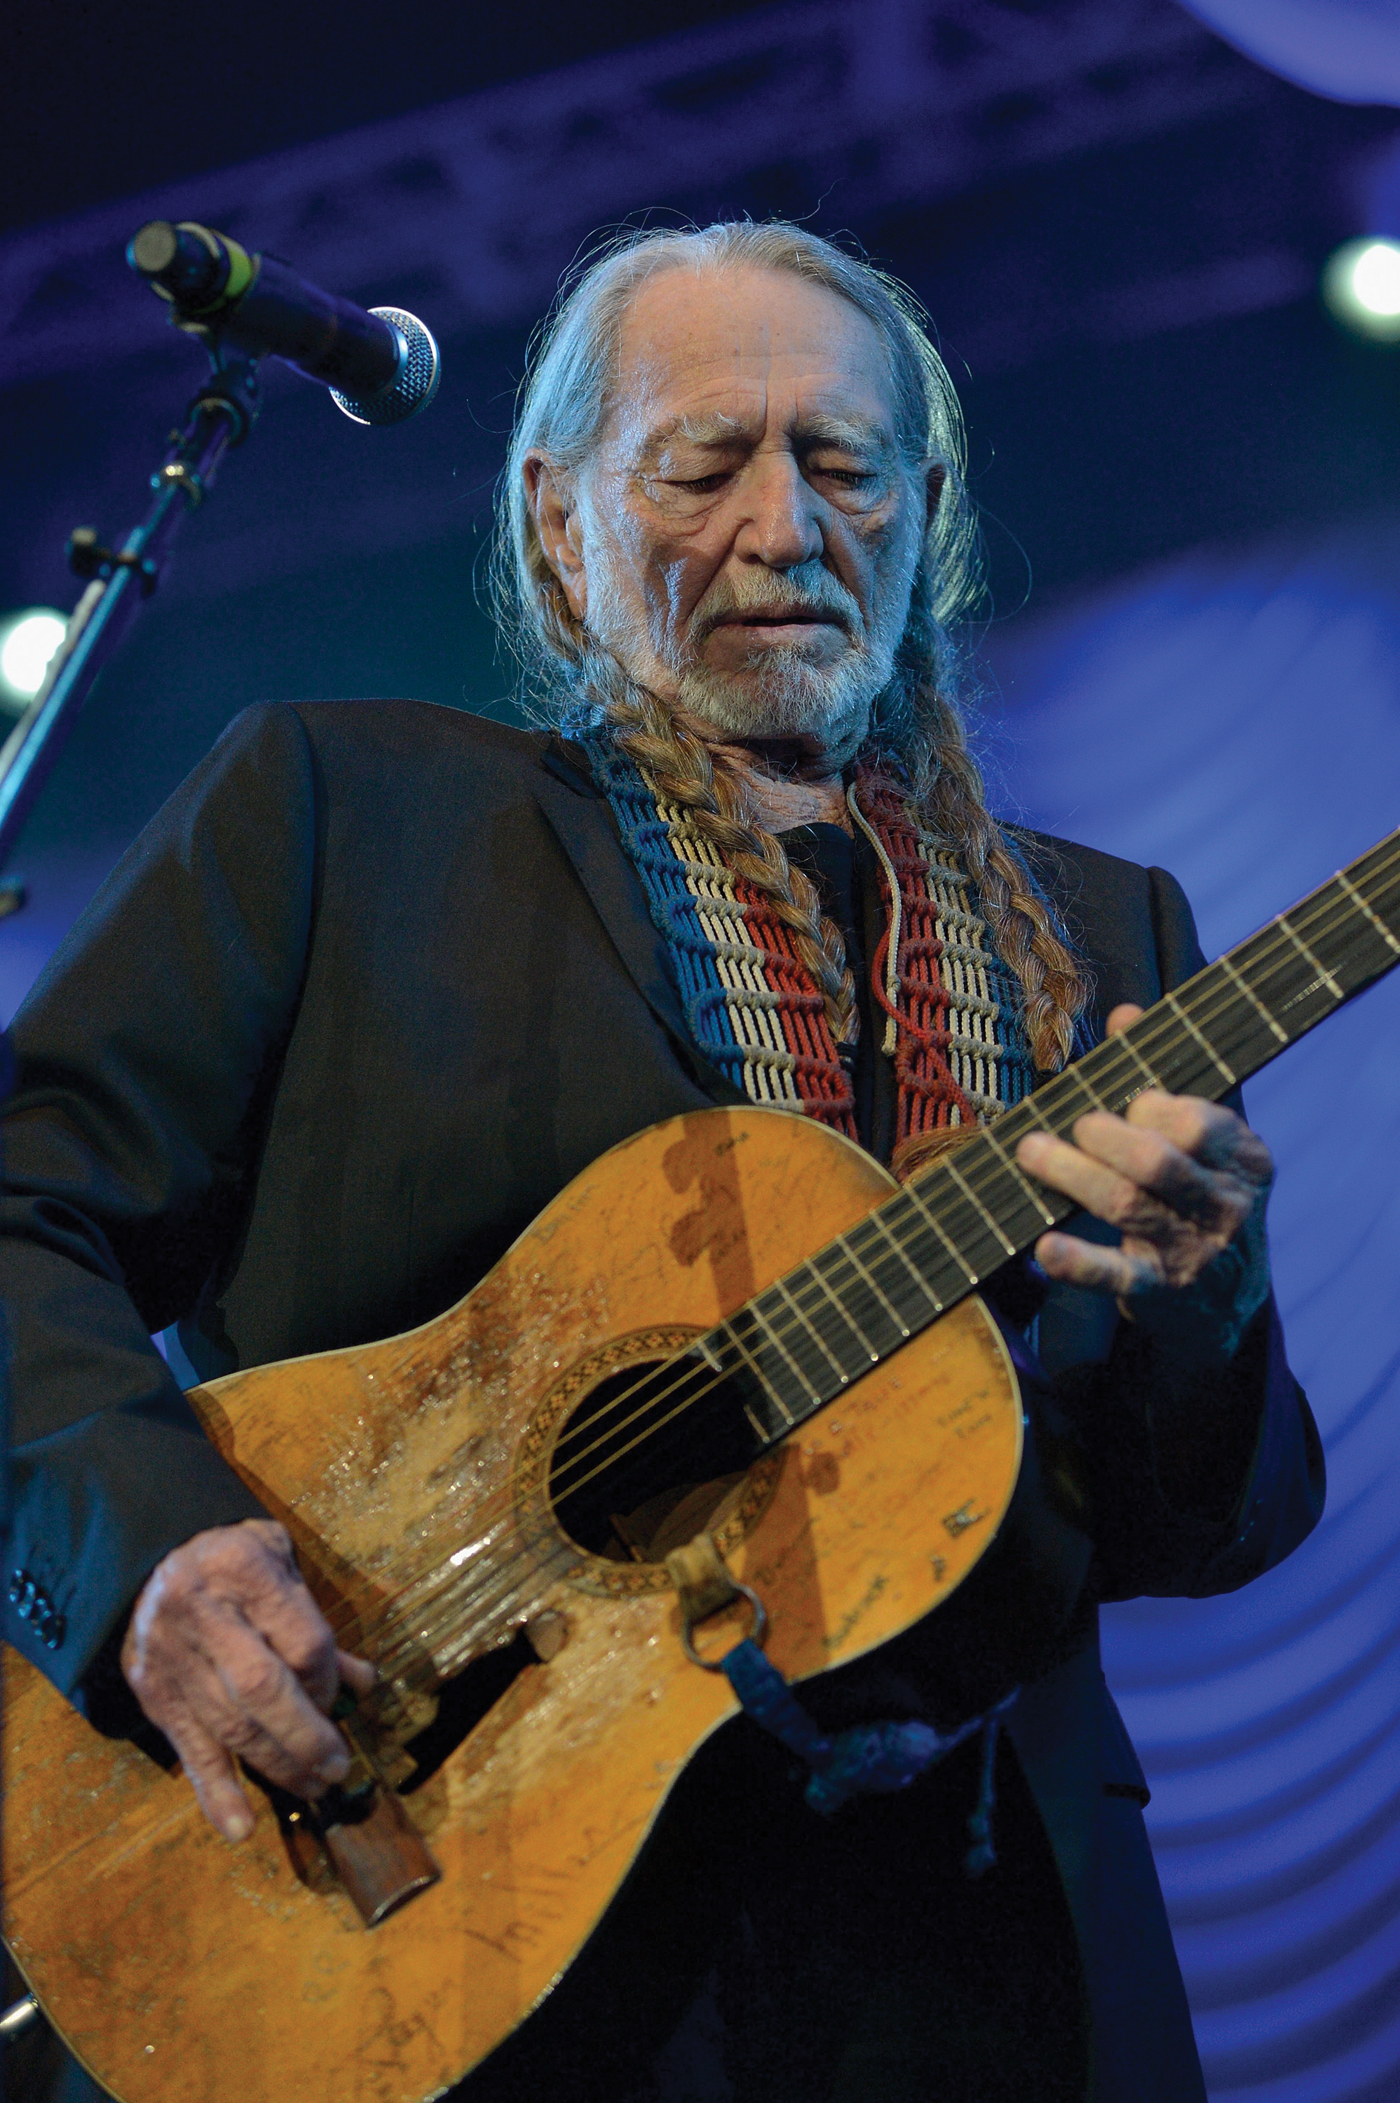 Willie Nelson performs during the 2013 Berklee College Of Music Commencement Concert. (Photo by Paul Marotta/Getty Images)